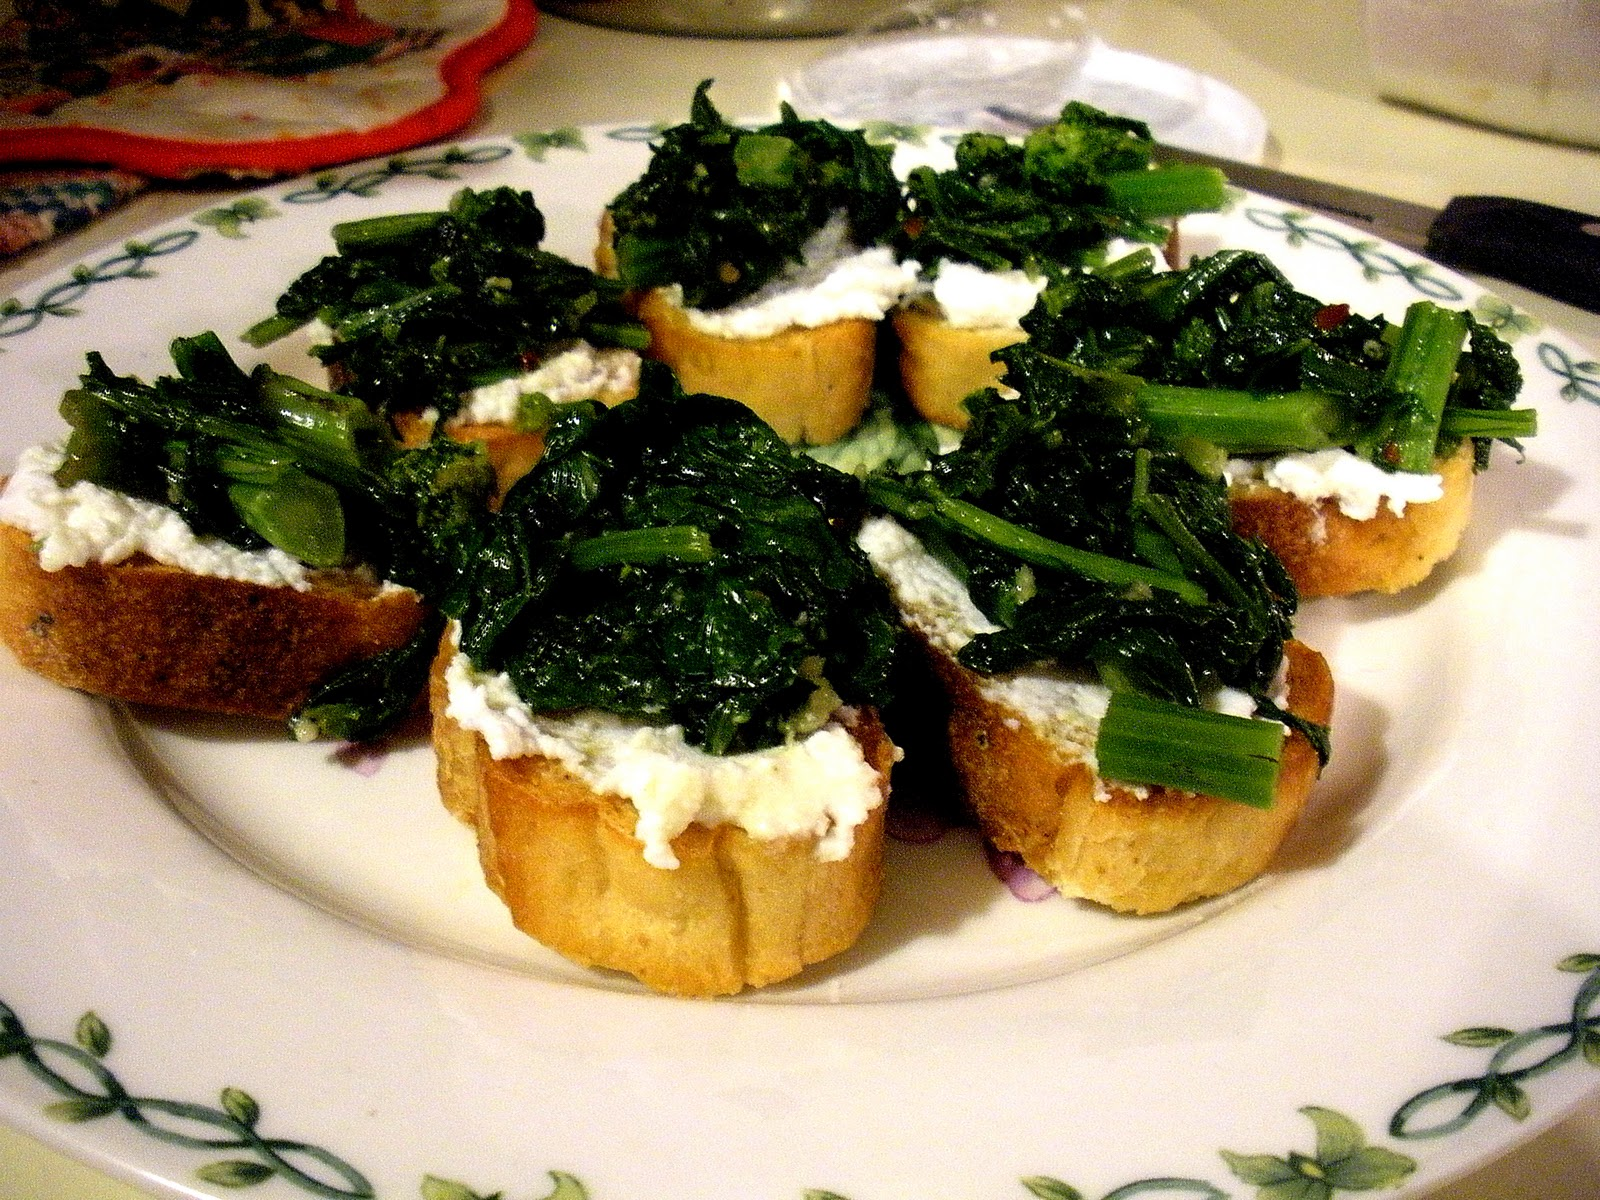 The Reformed Eater: Spicy Broccoli Rabe Bruschetta